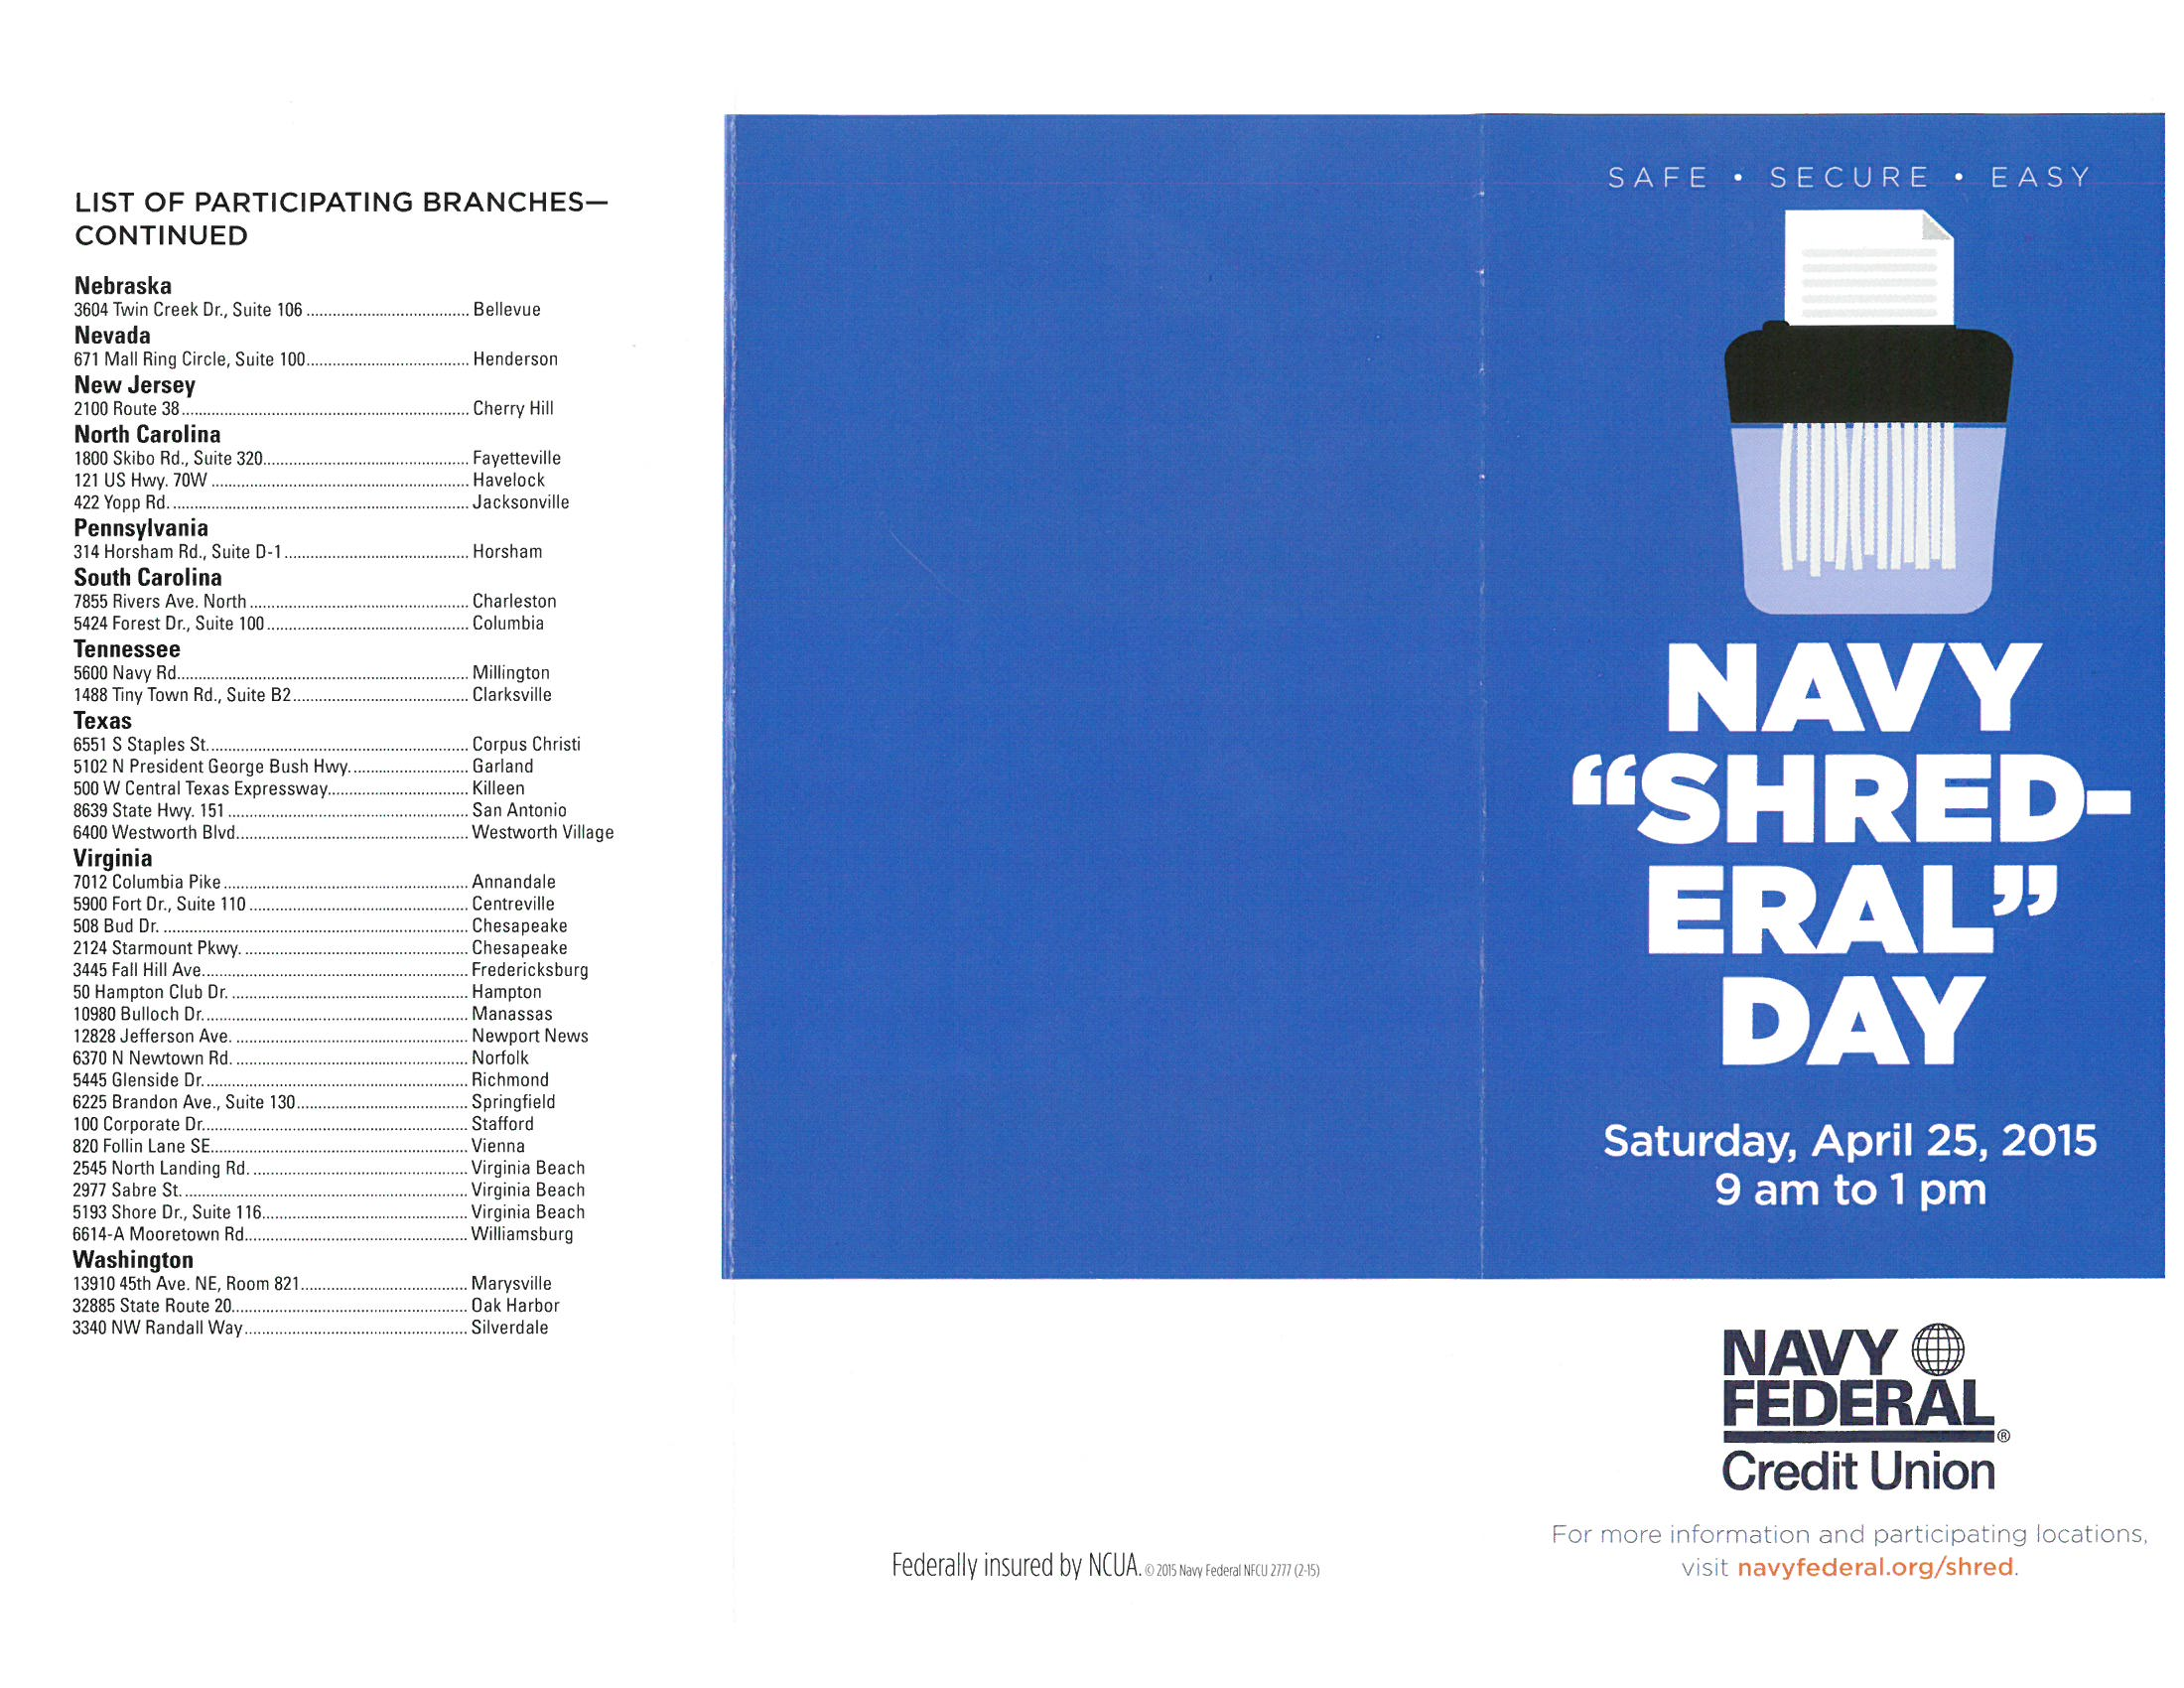 """Navy """"Shred-eral"""" Day - Apr 25, 2015"""